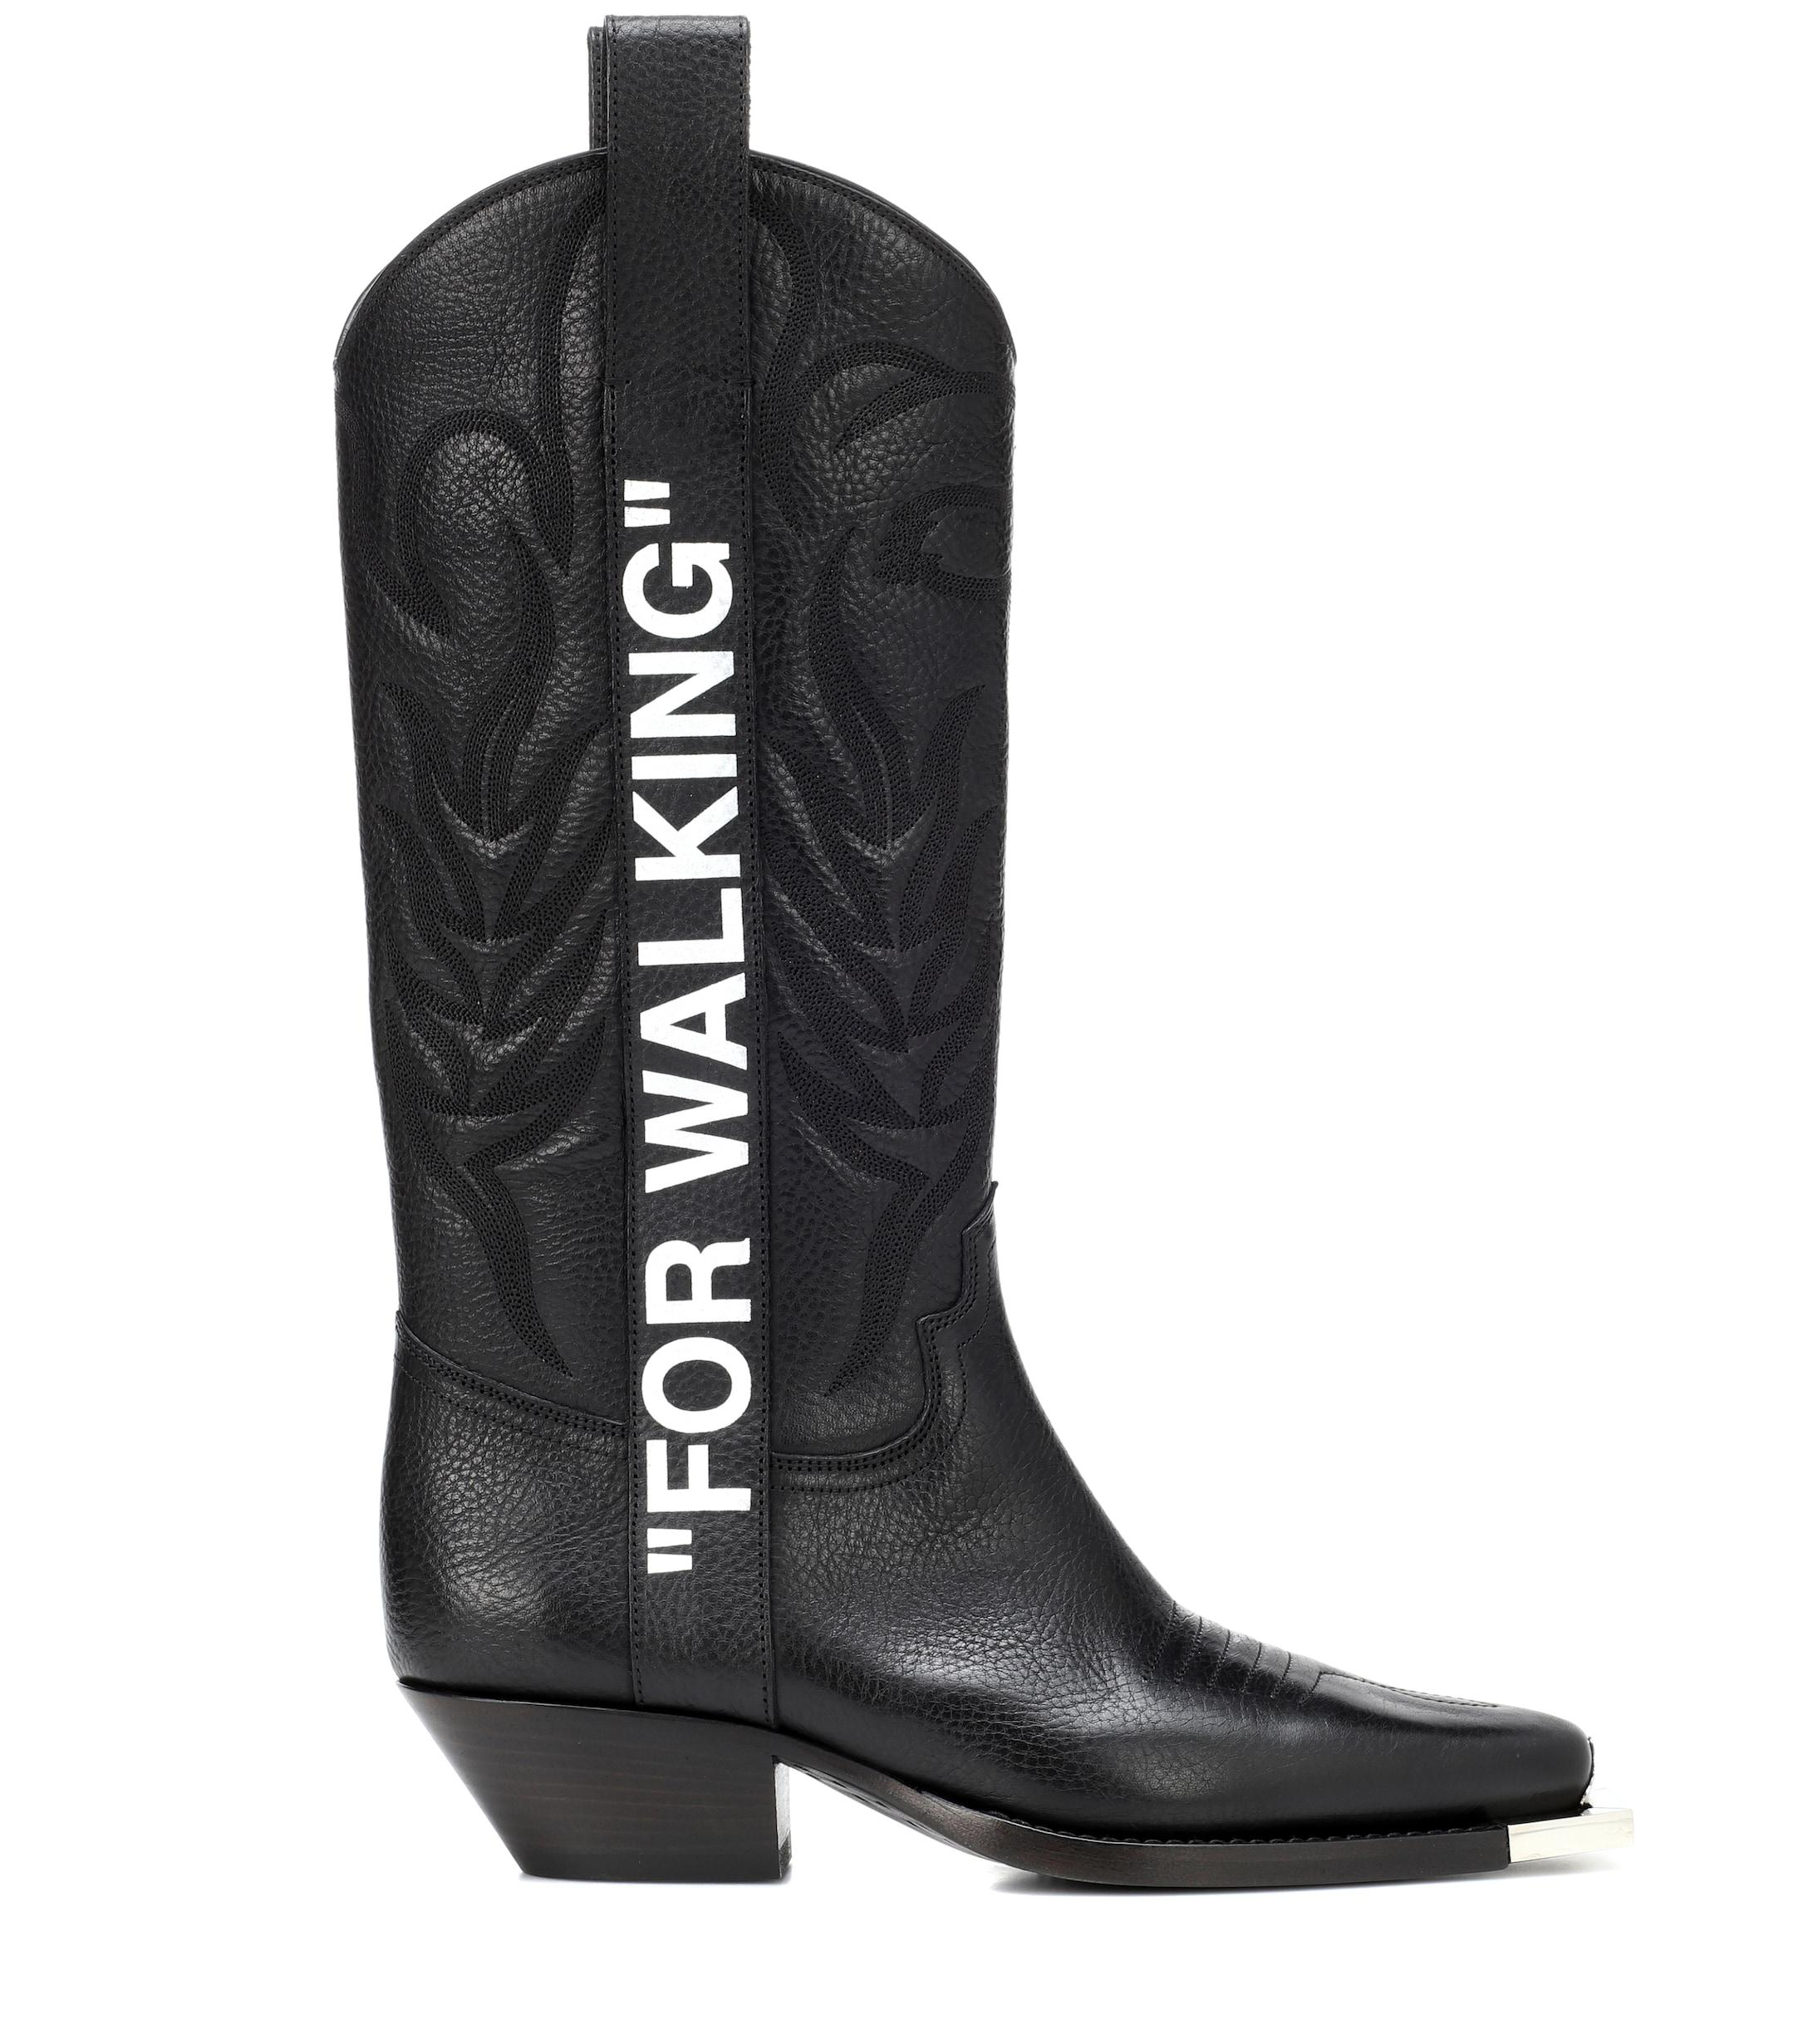 For Walking Cowboy Boots in Black